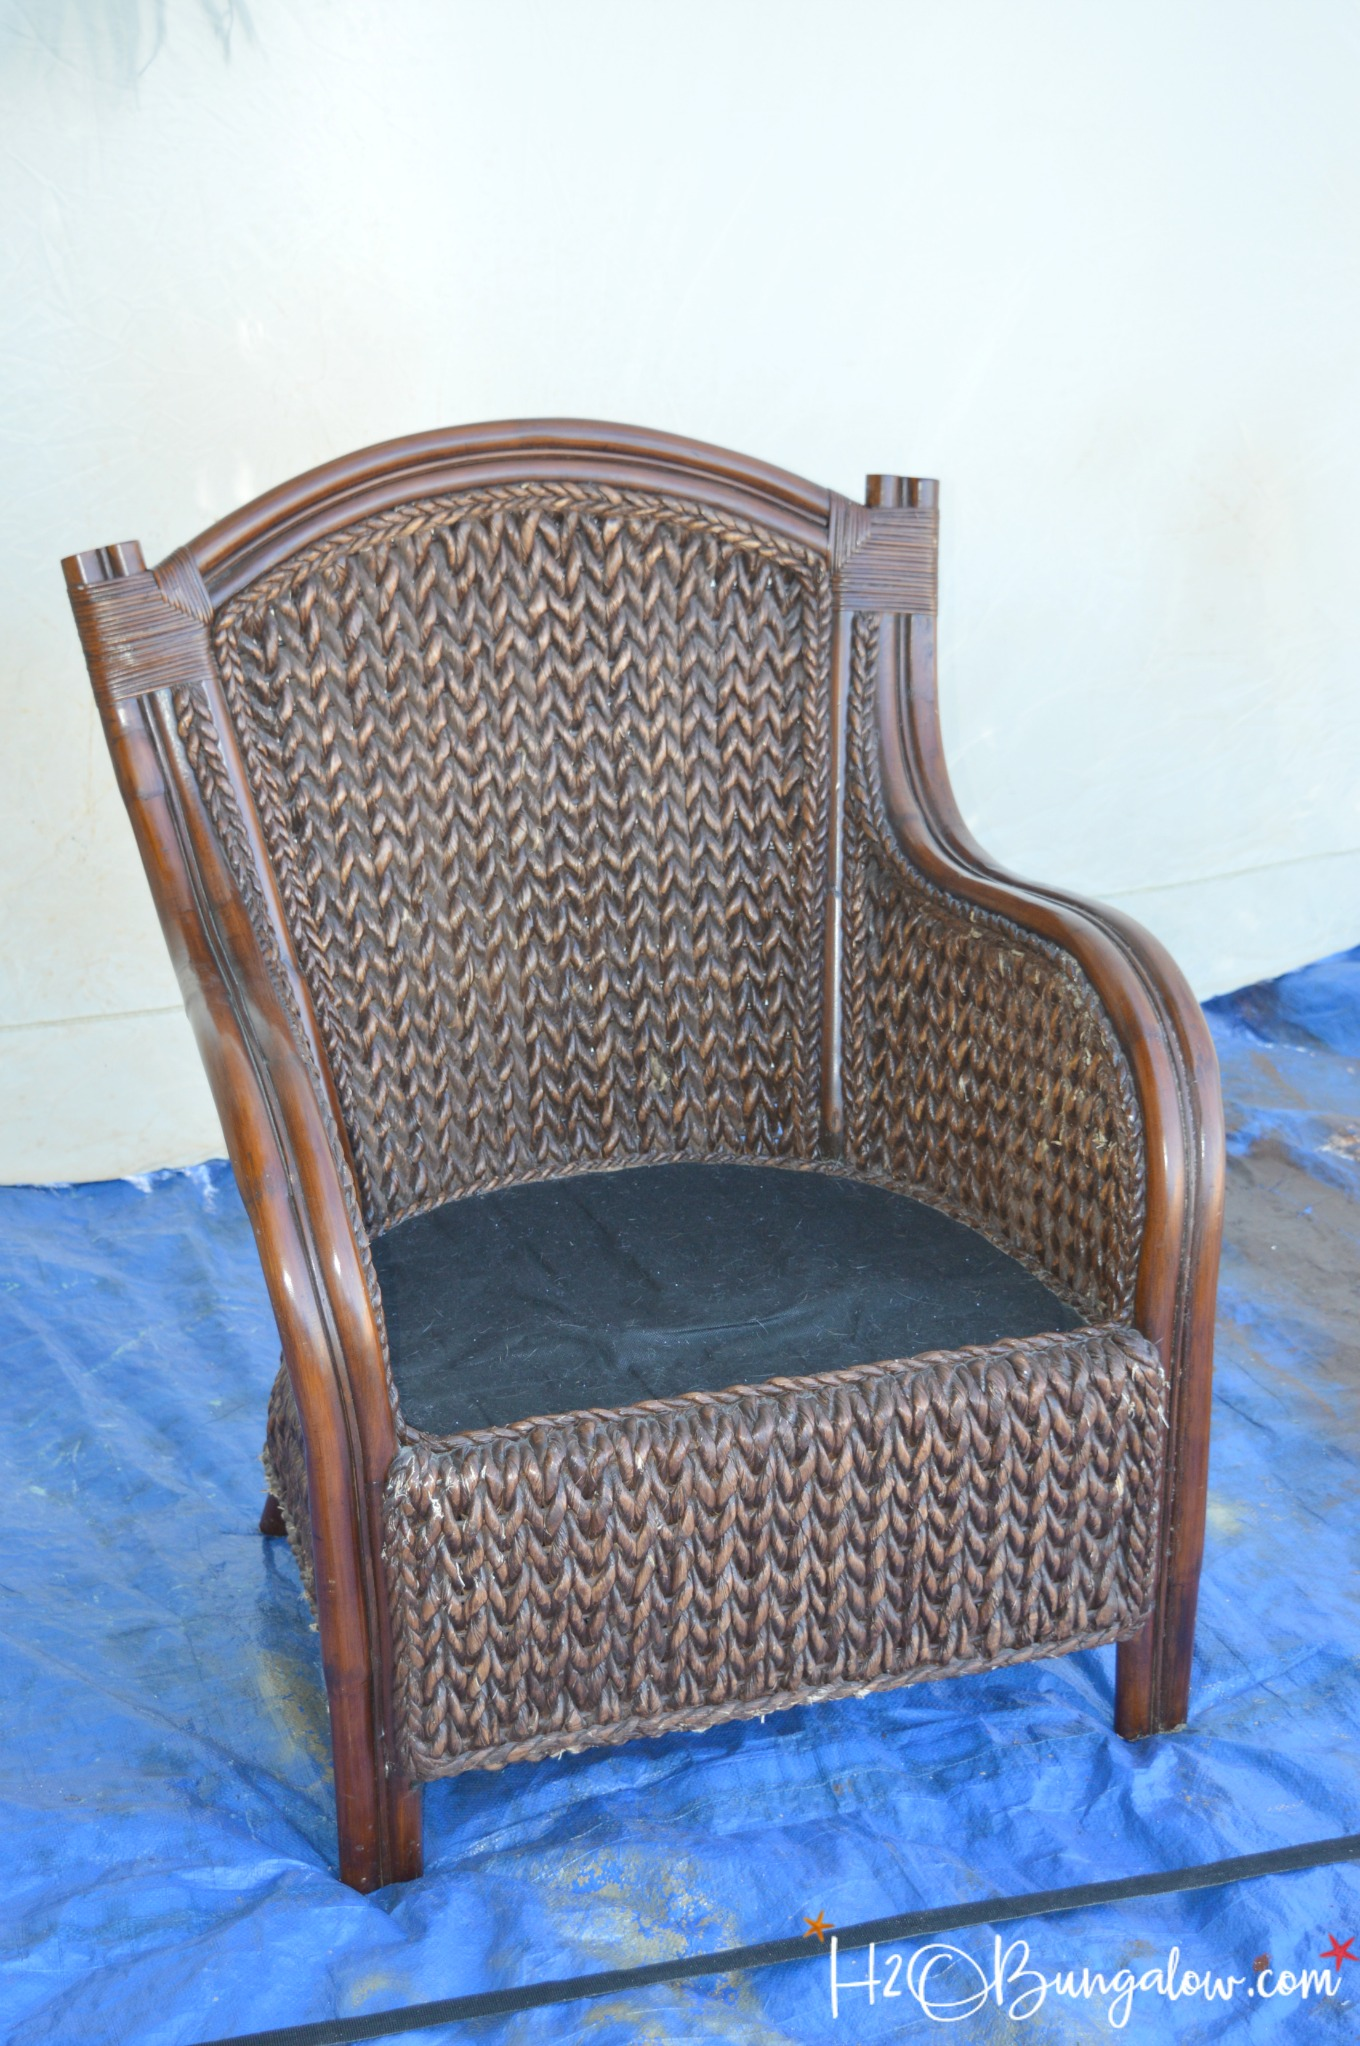 Painted Rattan Furniture How To Paint Wicker Furniture Quickly And Easily H2obungalow